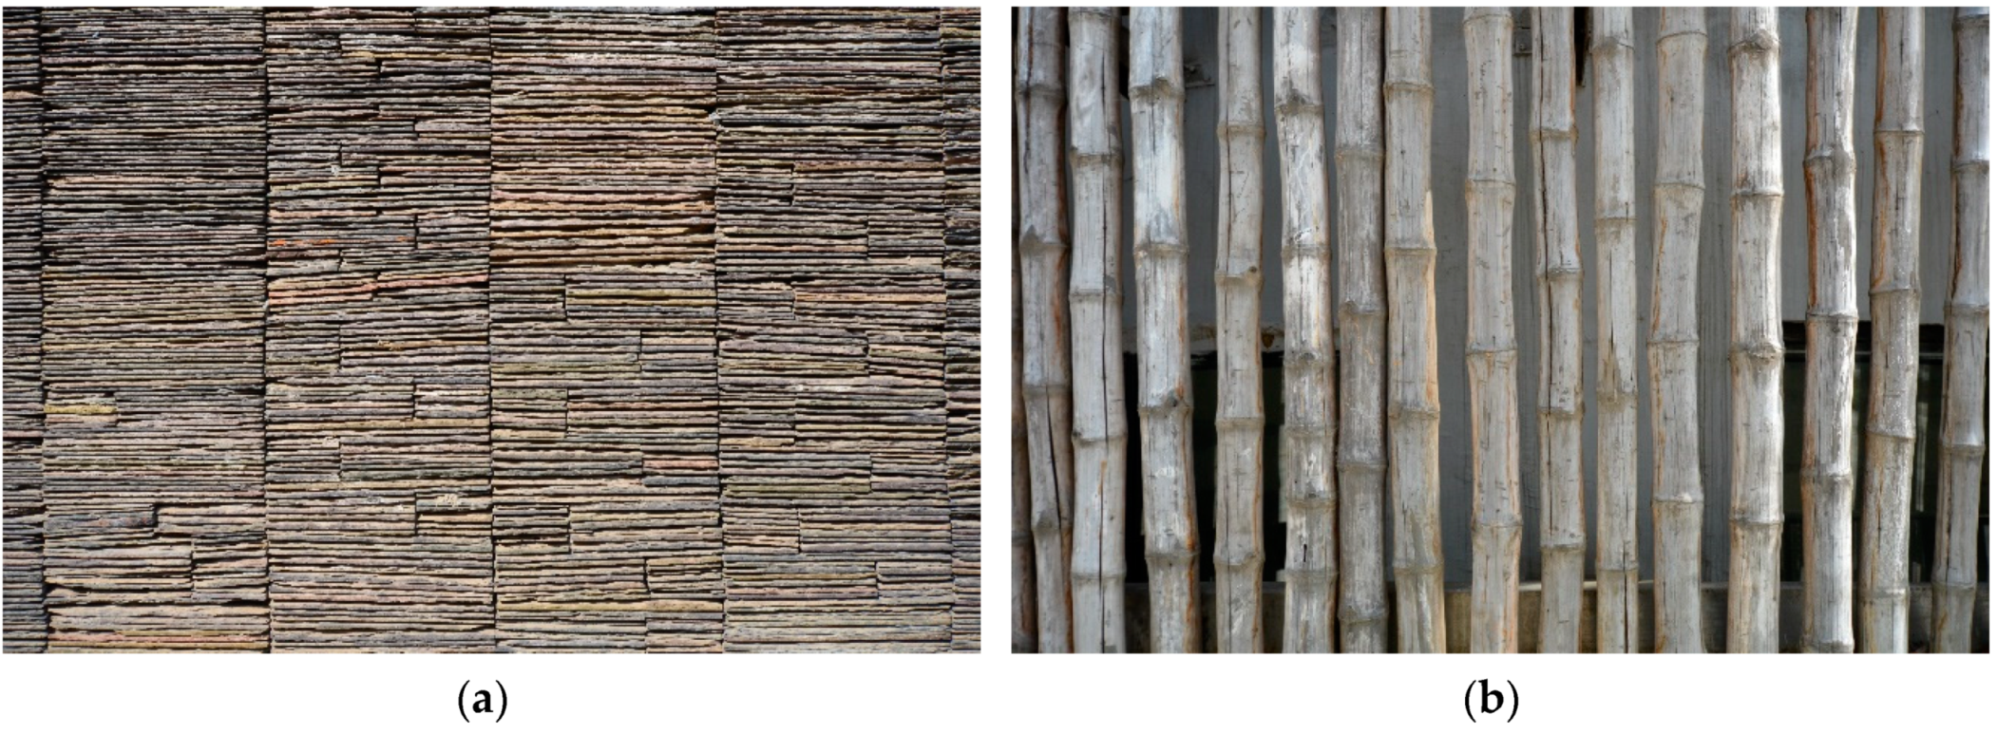 how to make an outdoor bamboo privacy screen woodworking.htm buildings free full text a study of regional assertions in the  buildings free full text a study of